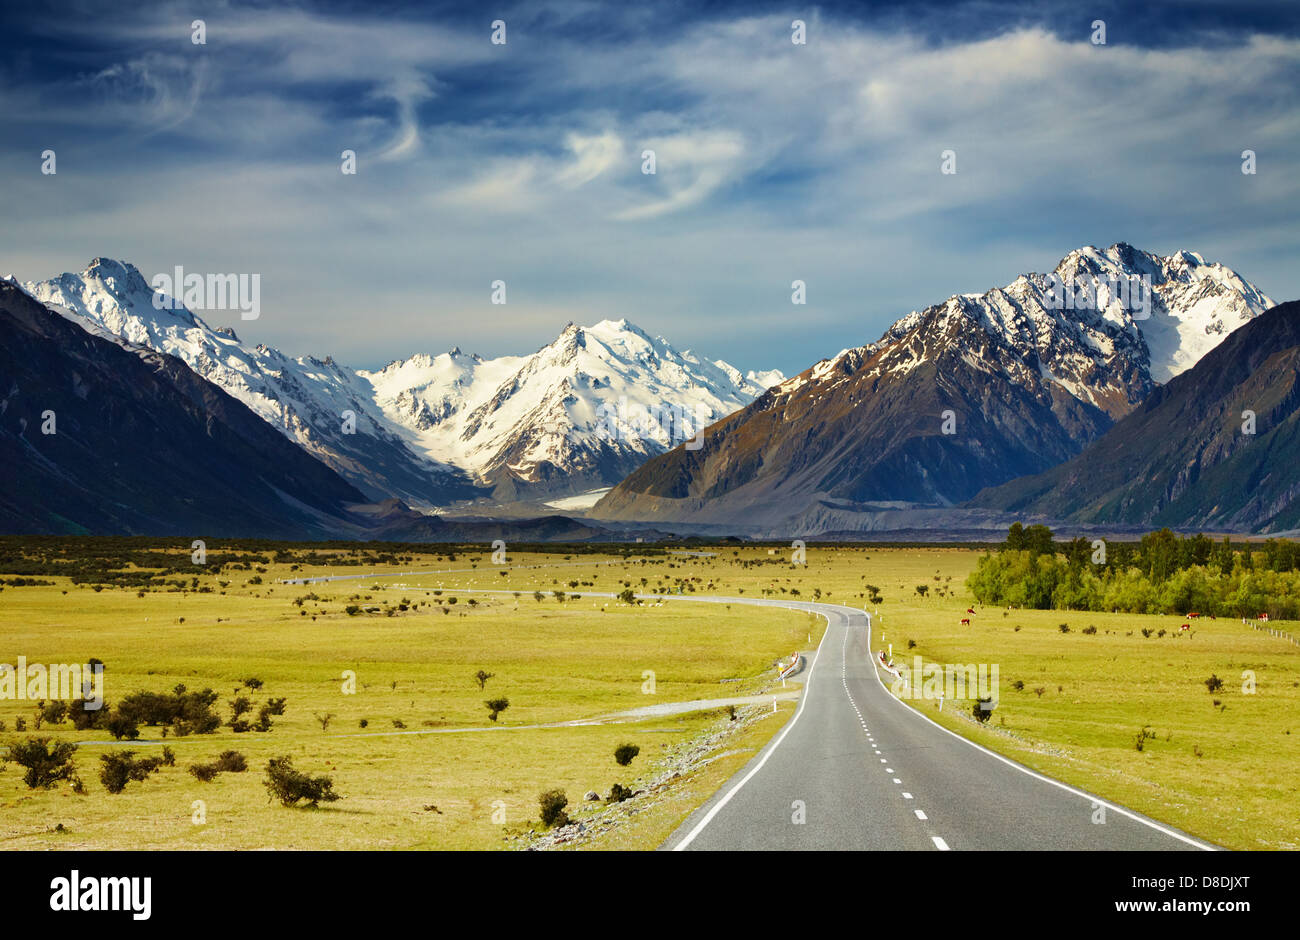 Landscape with road and snowy mountains, Southern Alps, New Zealand - Stock Image